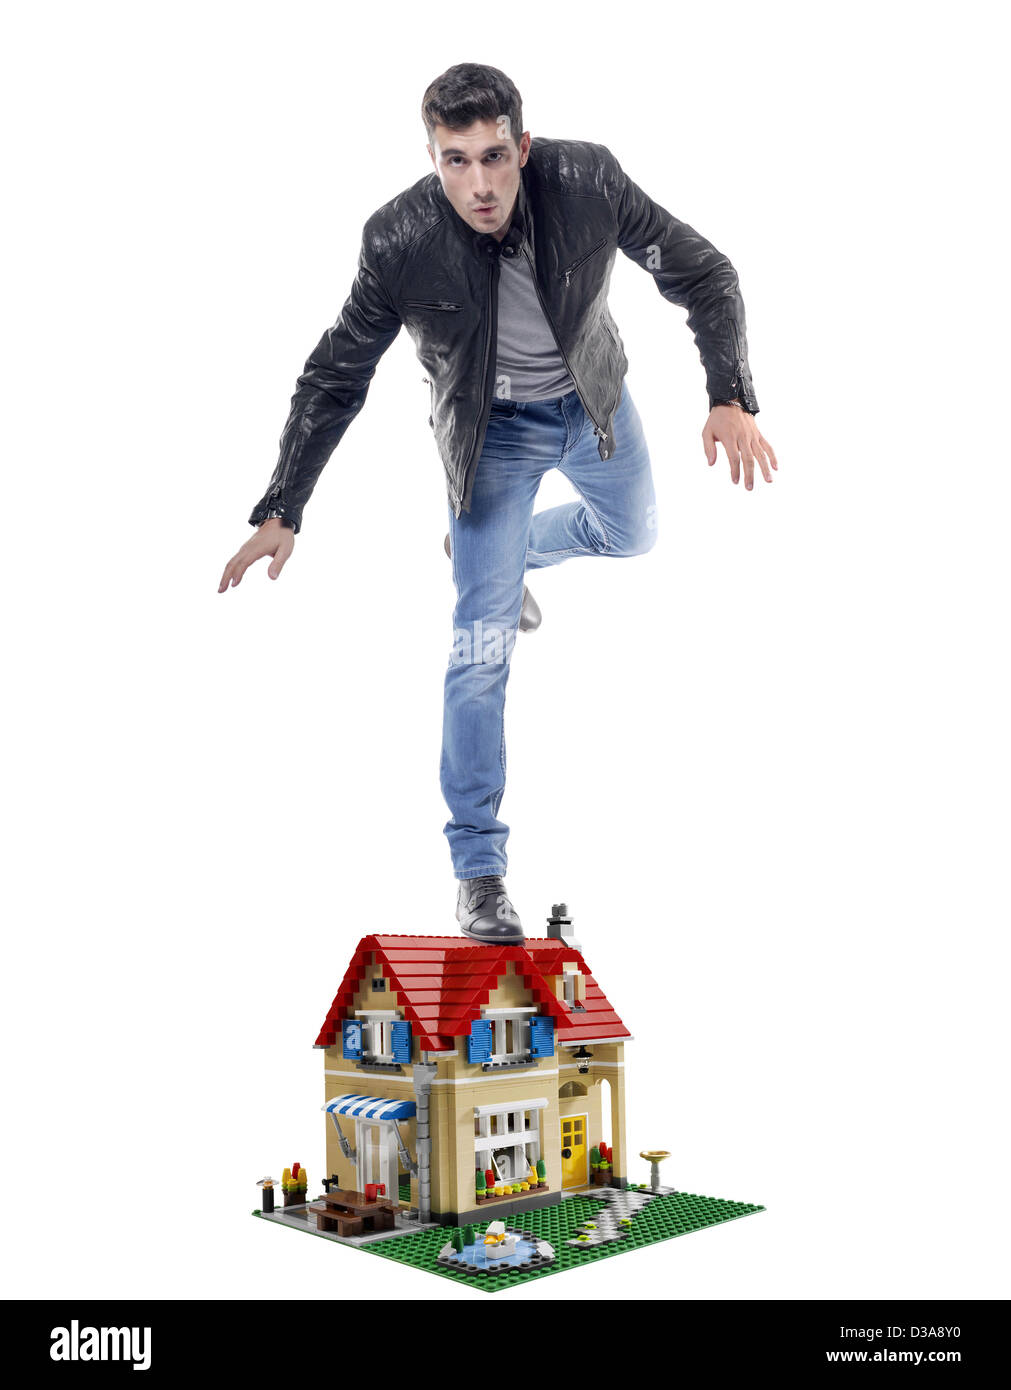 Man balanced on a small model of a house - Stock Image